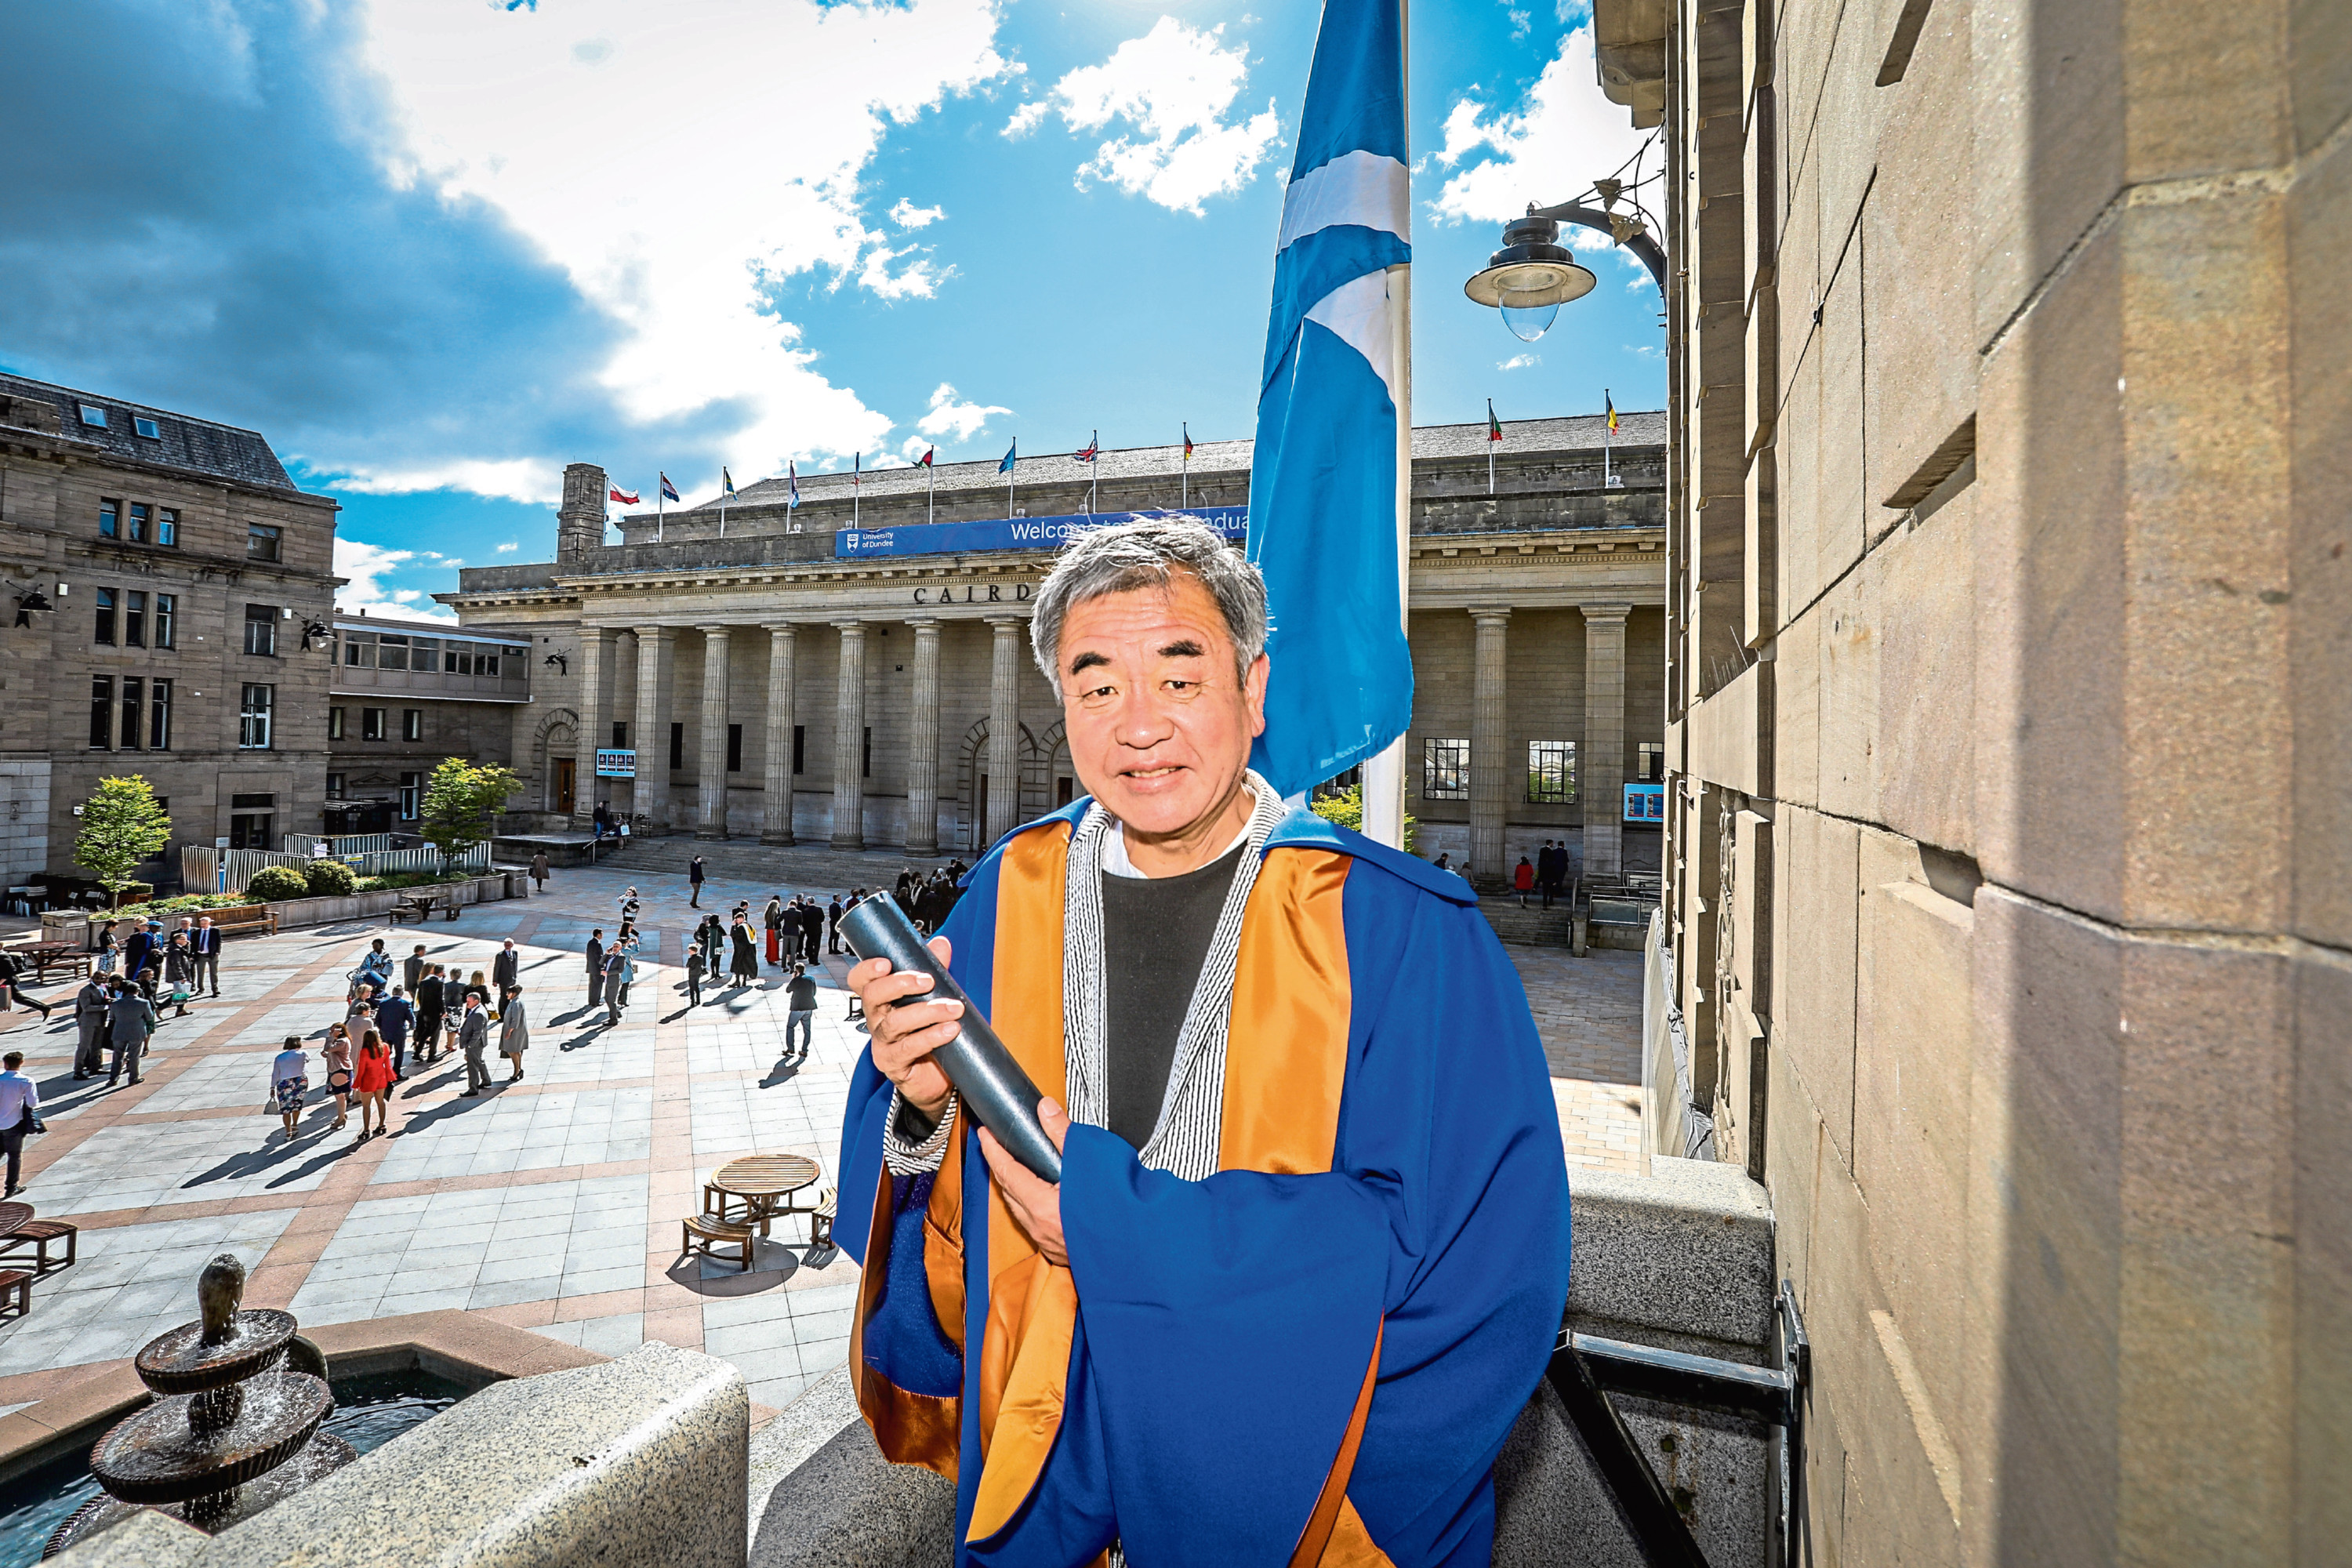 Kengo Kuma with his honorary degree in the city square